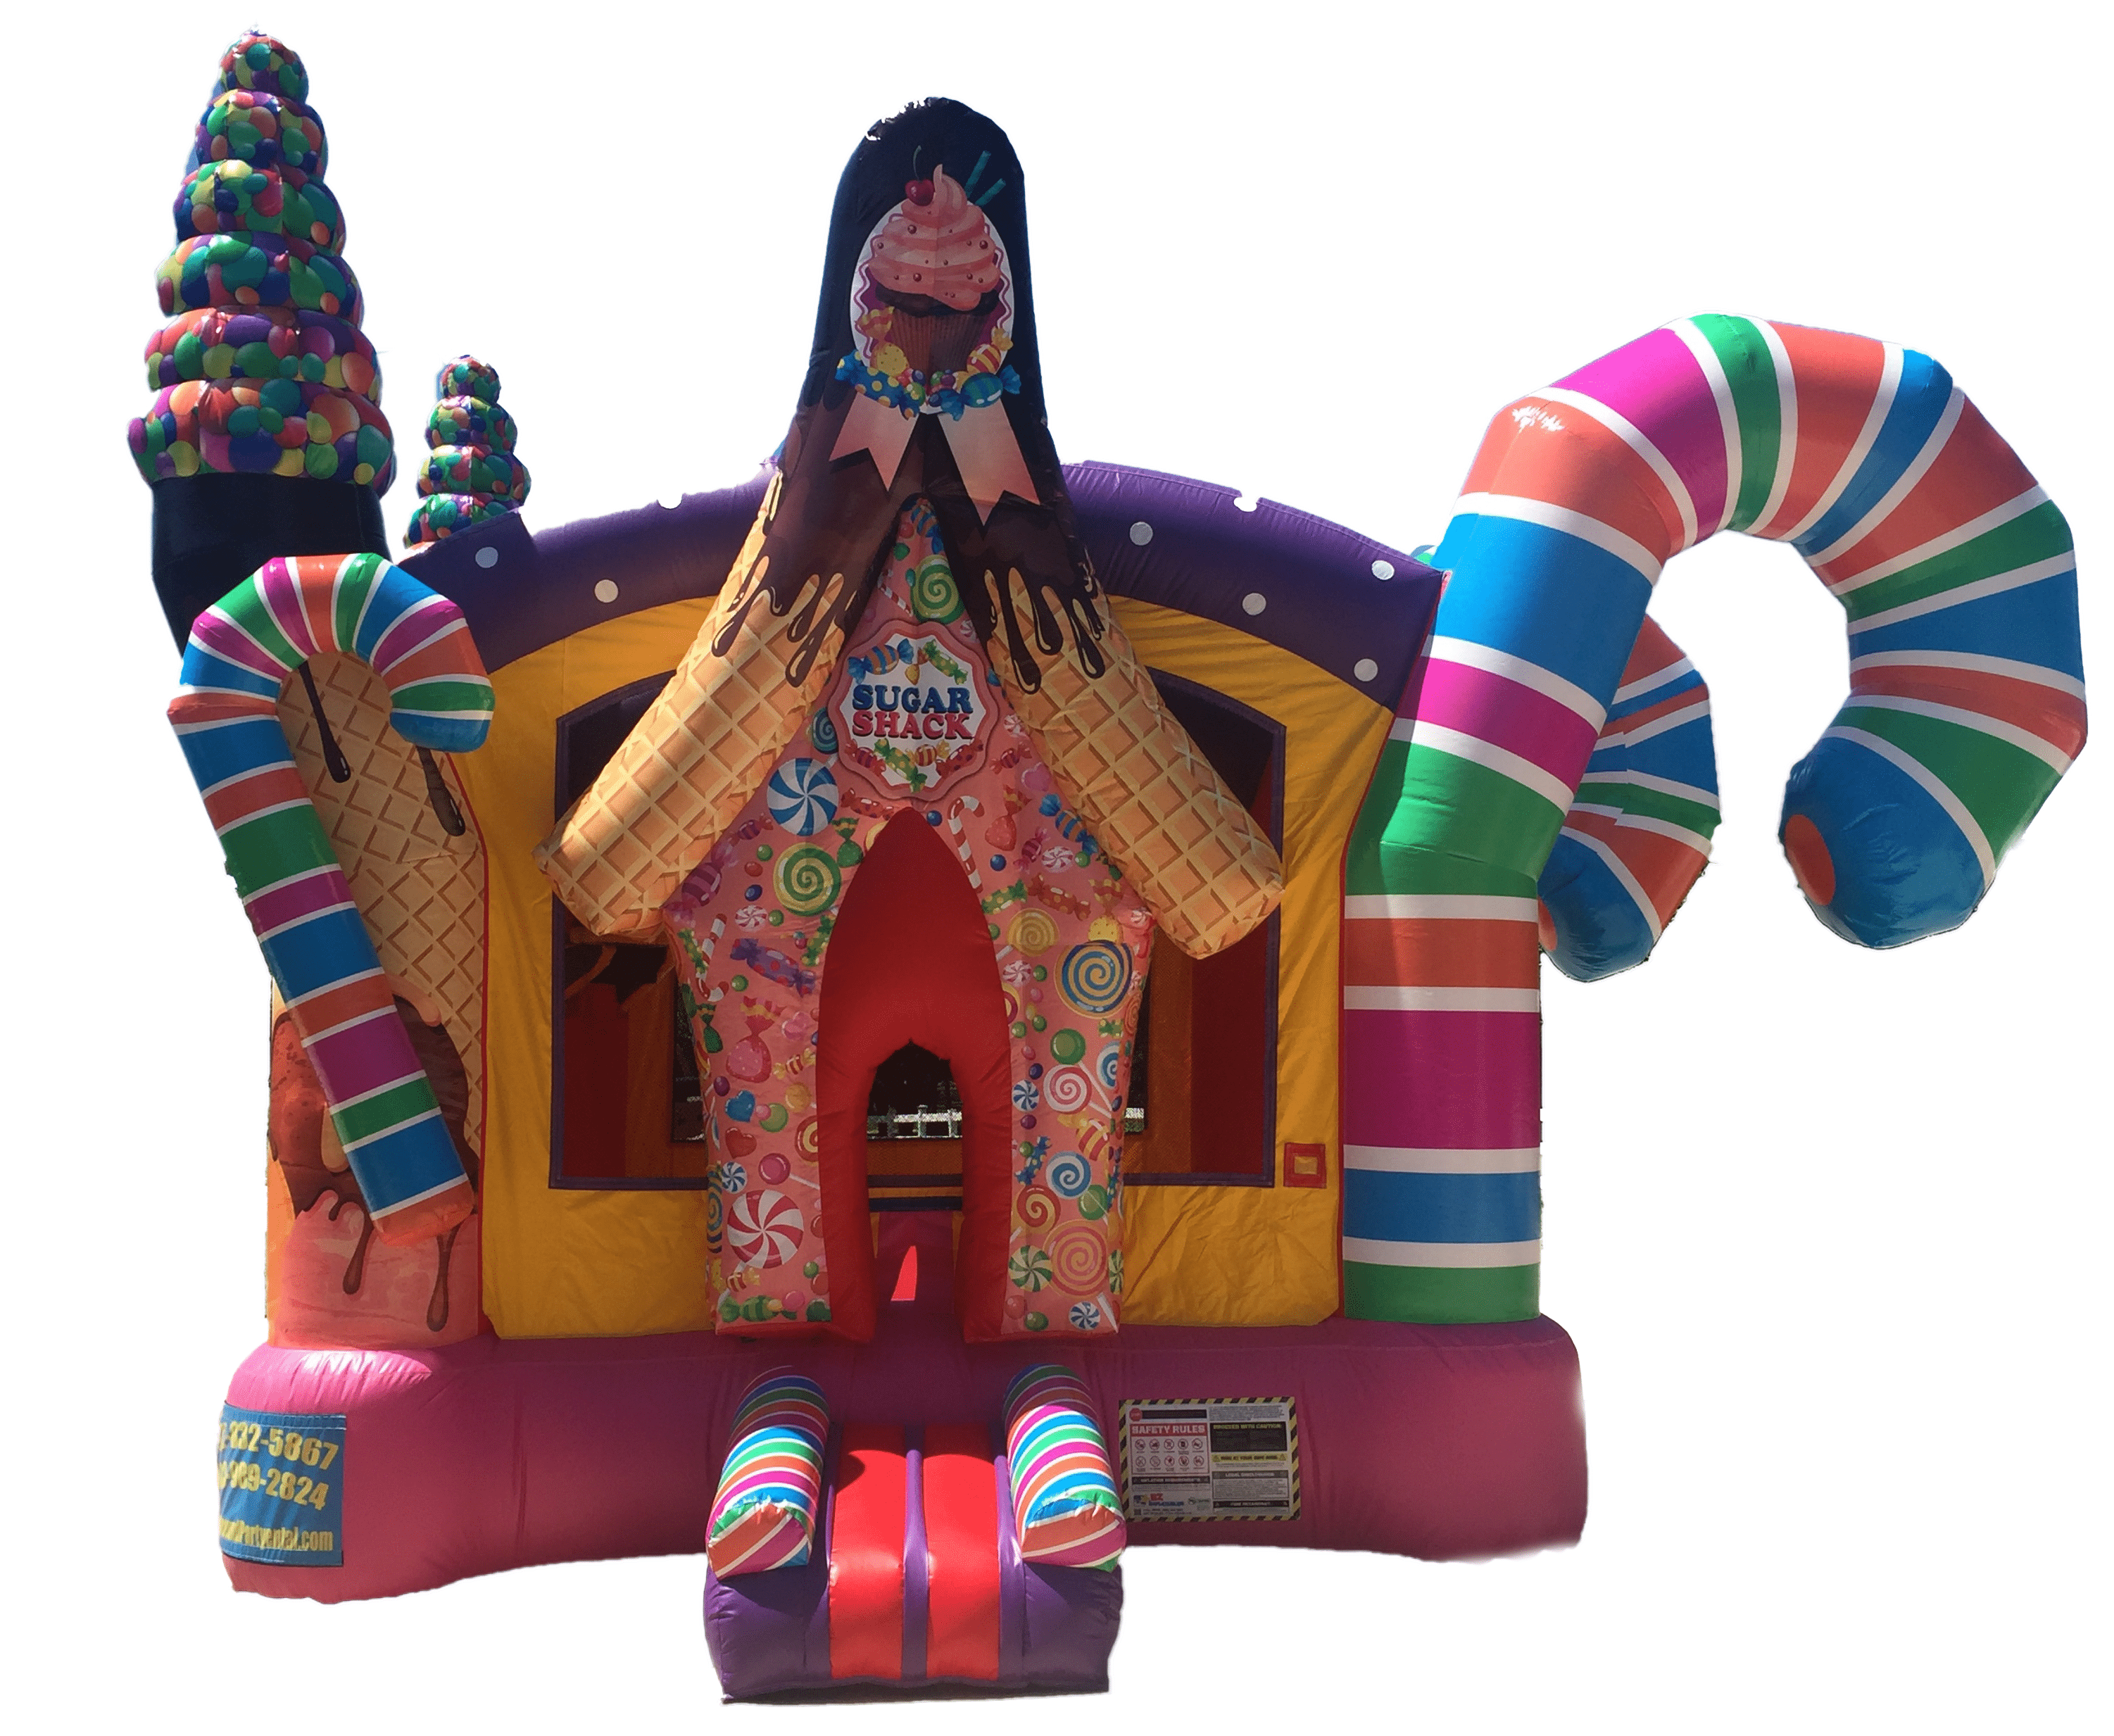 sugar shack inflatable bounce house rentals